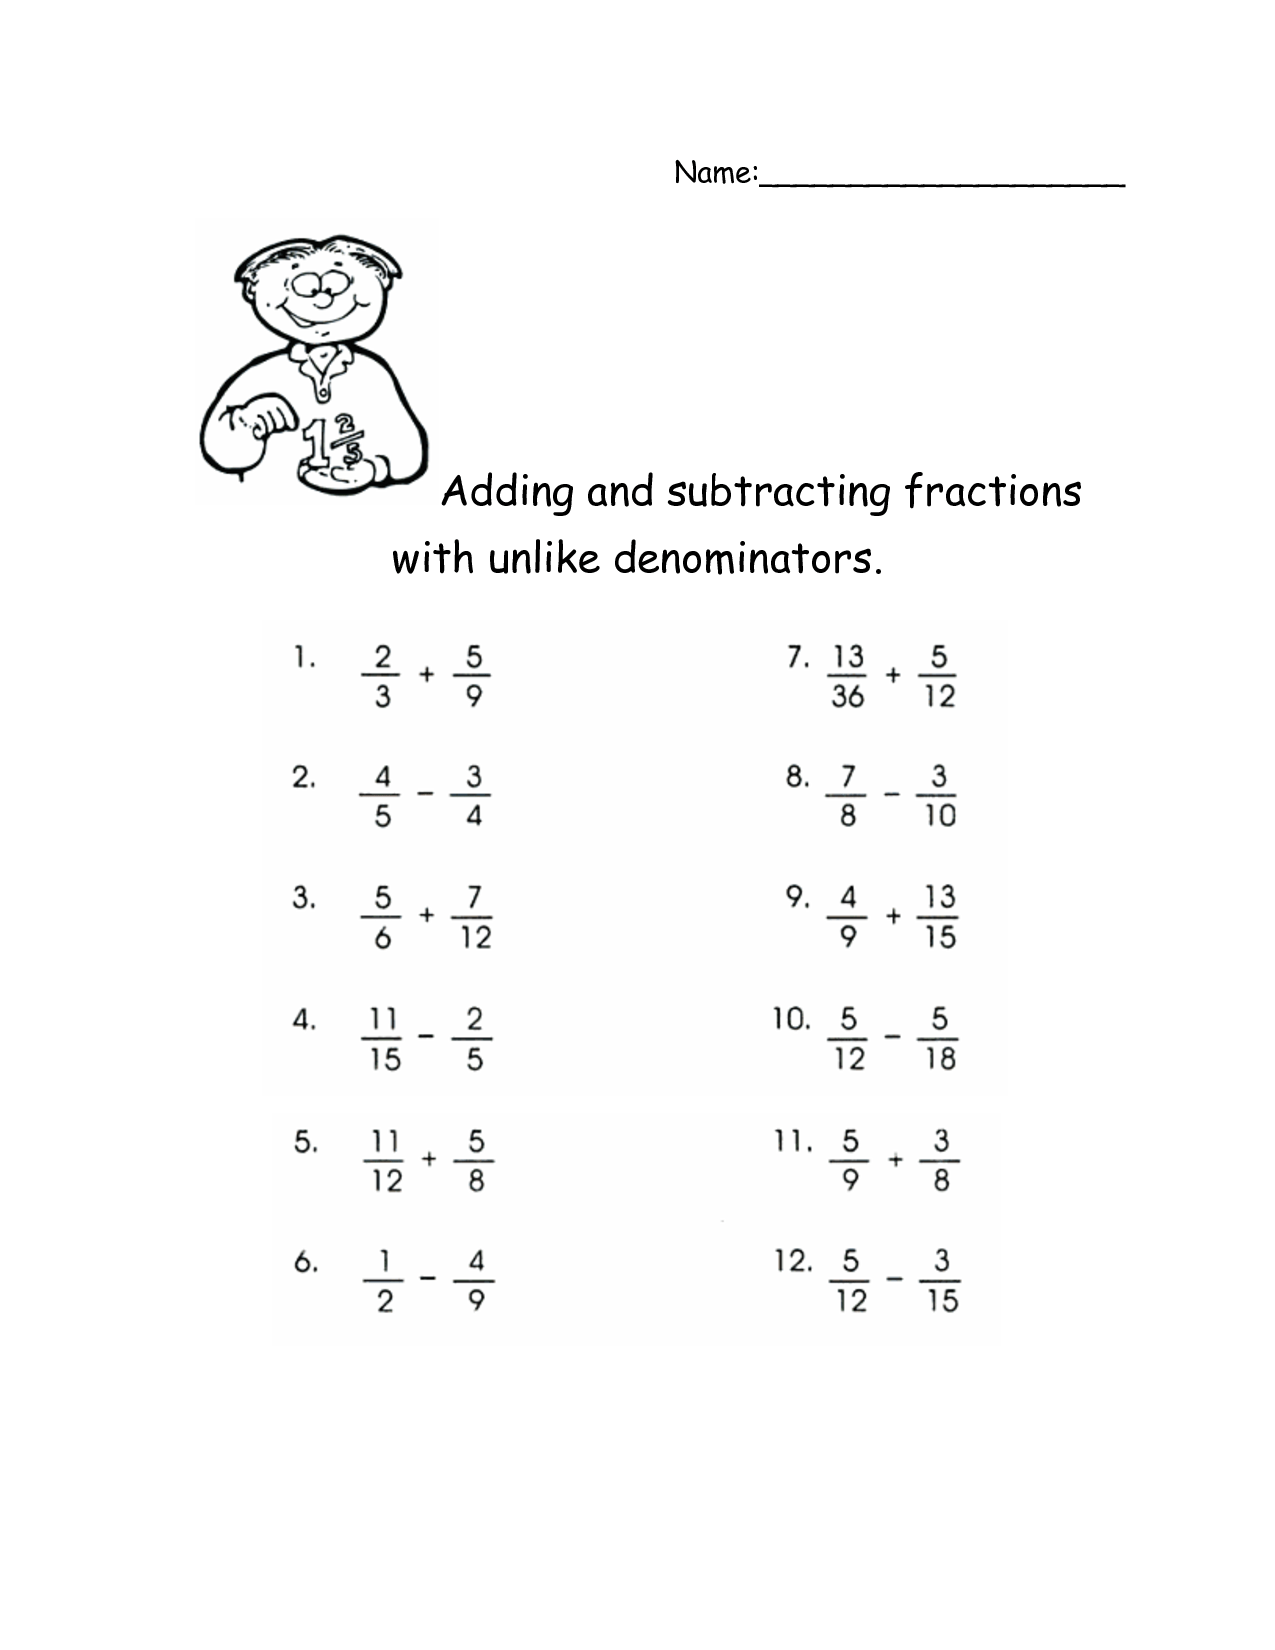 Worksheet Adding And Subtracting Positive Negative Auto Sunpro Super Tach 2 Wiring Diagram Along With On Integers Multiplying Dividing Fractions